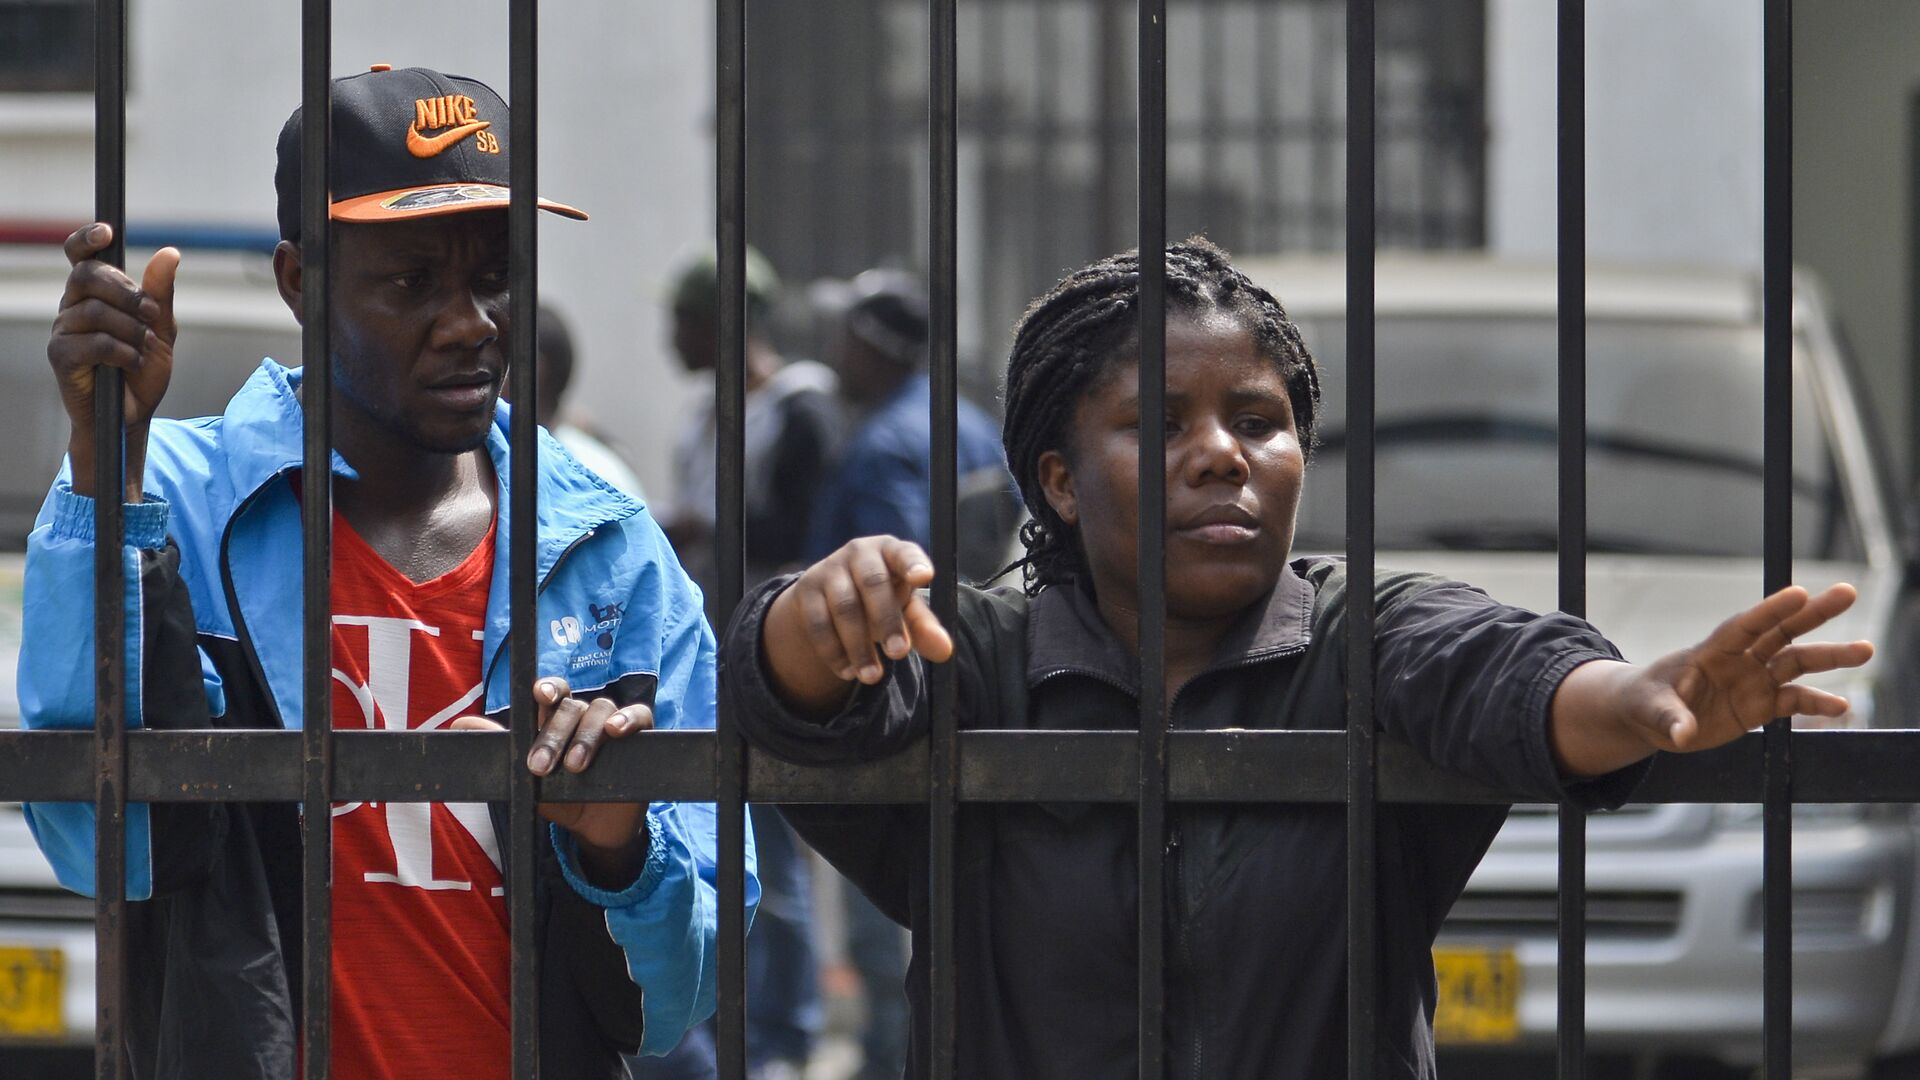 Haitian migrants wait at the immigrations office in Cali, Colombia on August 10, 2016. A group of 137 Haitian migrants -comprised of 97 men, 30 women and ten children- coming from Brazil and Ecuador, voluntarily went to the immigration office in Cali seeking to resolve their legal situation, avoid deportation, and so, continue their way to Panama and the United States. - Sputnik Mundo, 1920, 16.02.2021